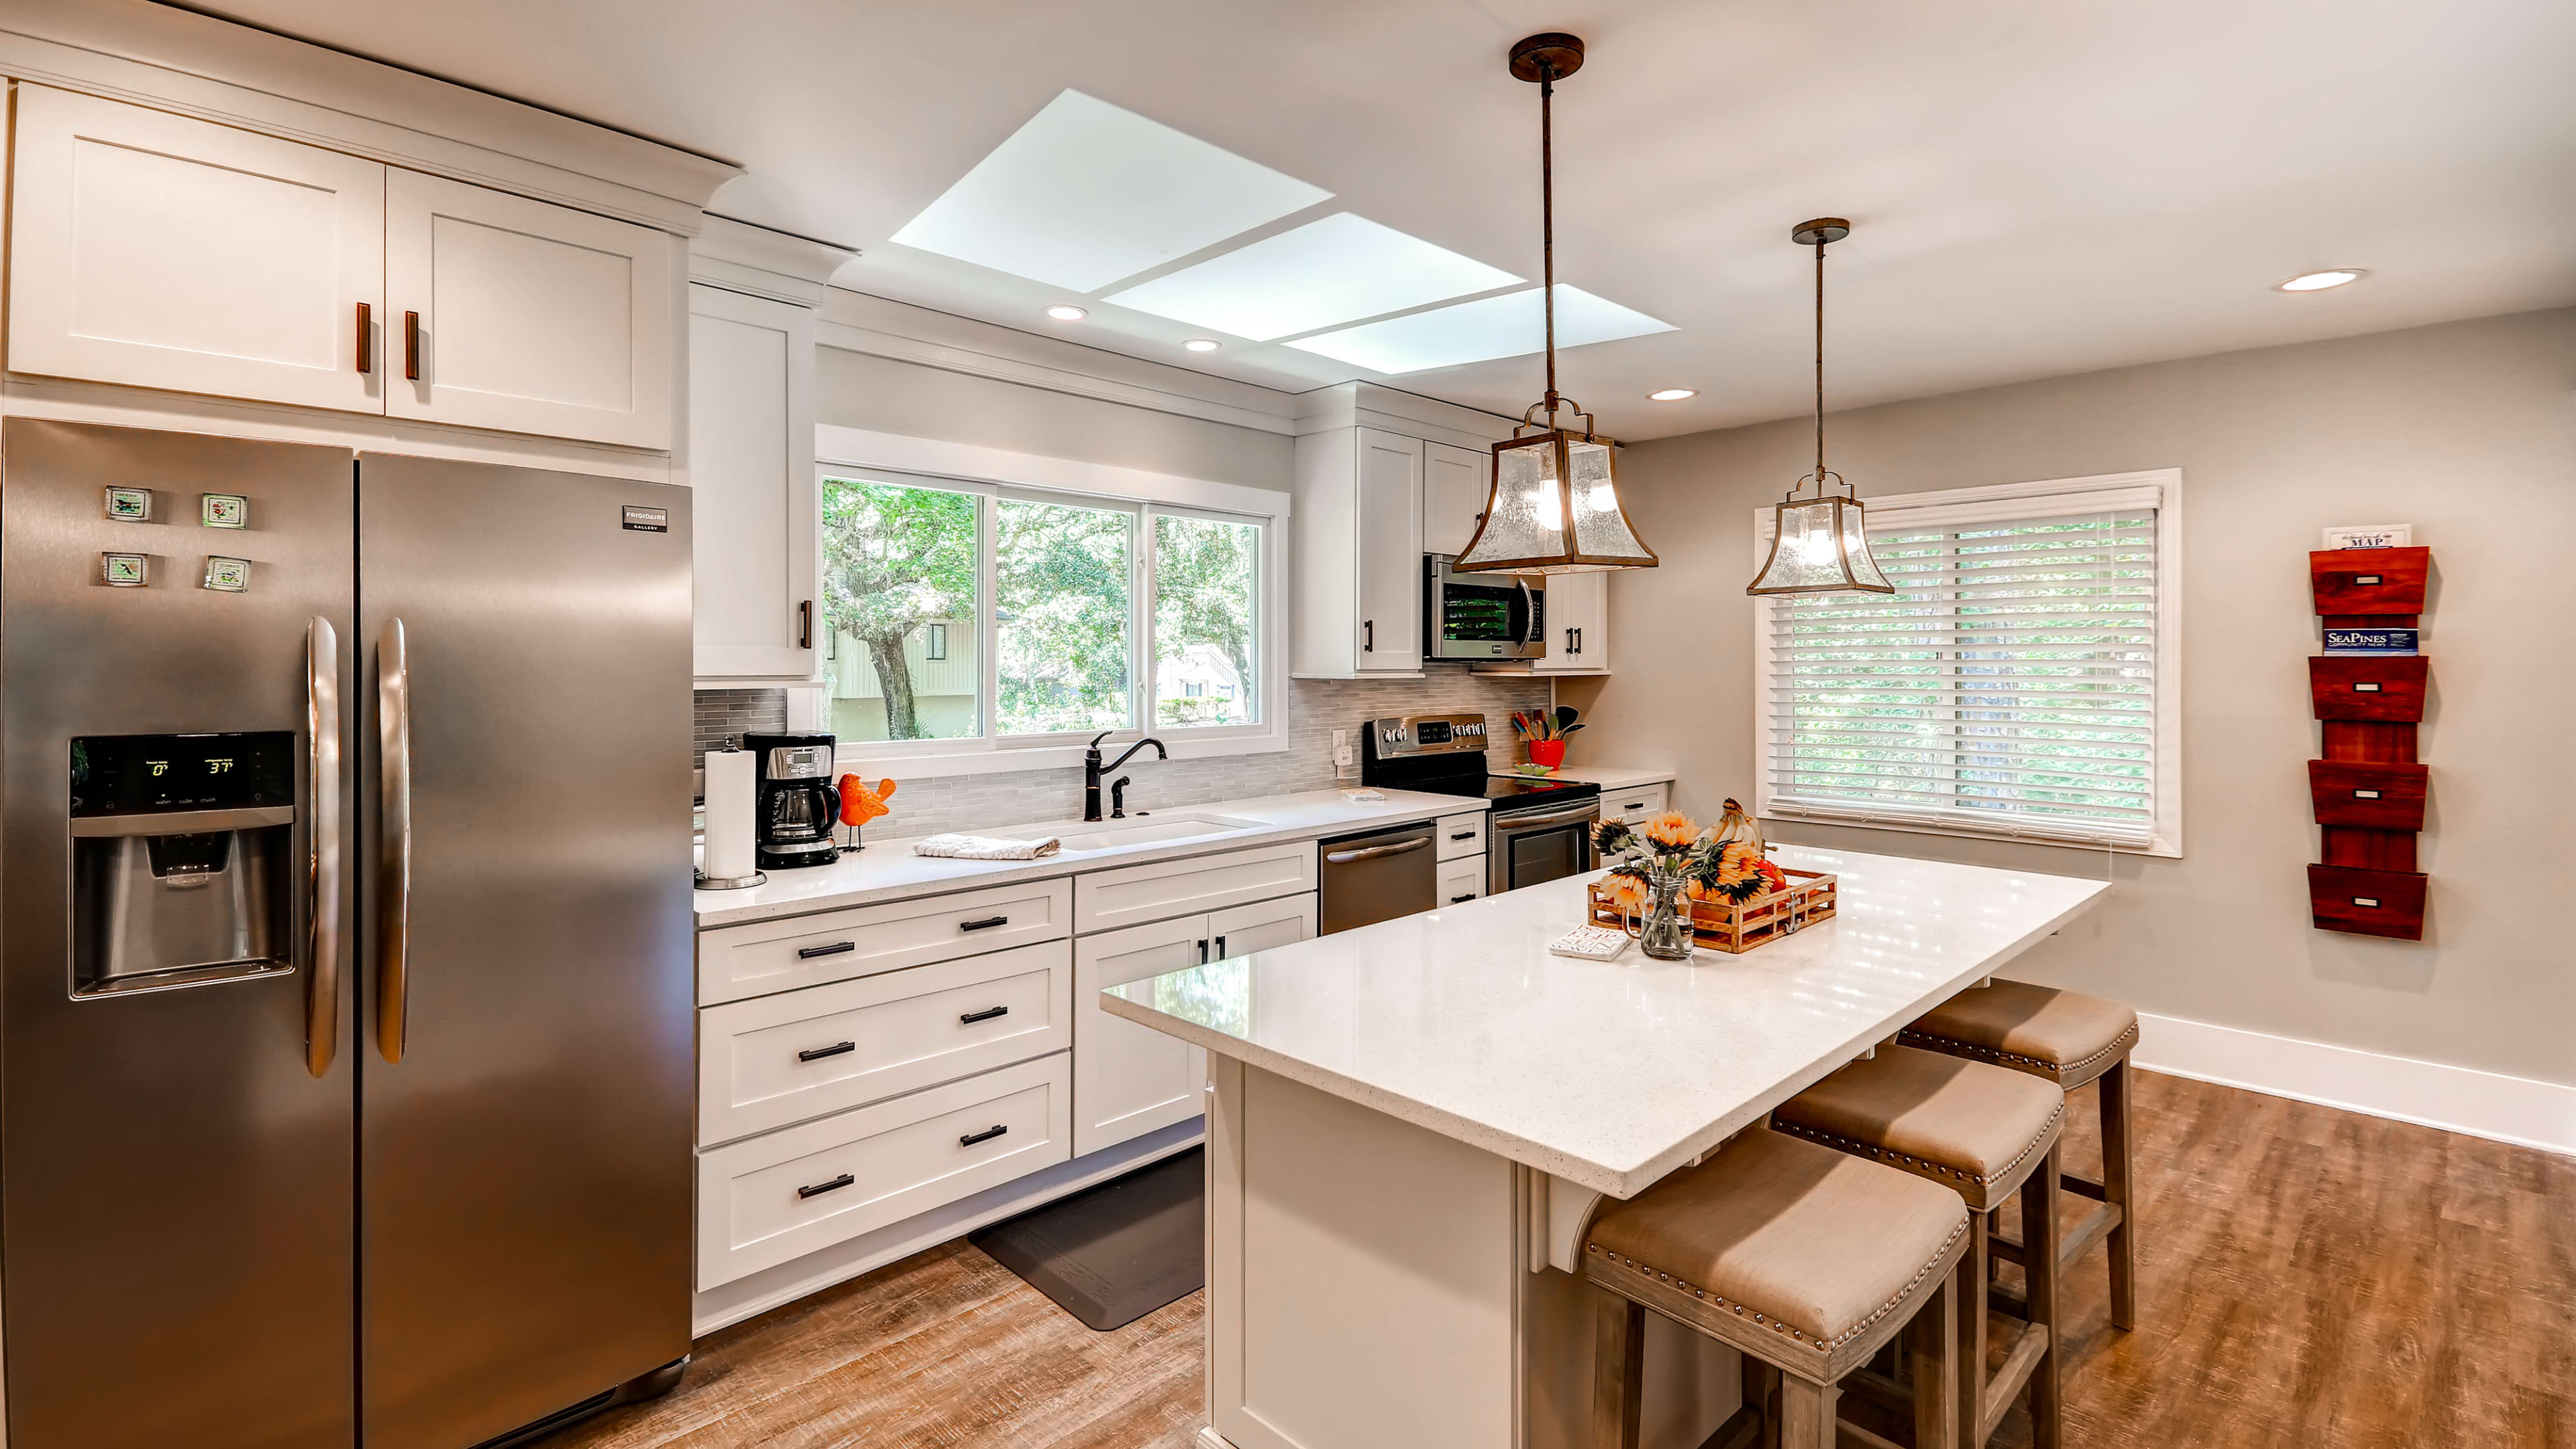 Fully Equipped Kitchen | Drip Coffee Maker | Dishwasher